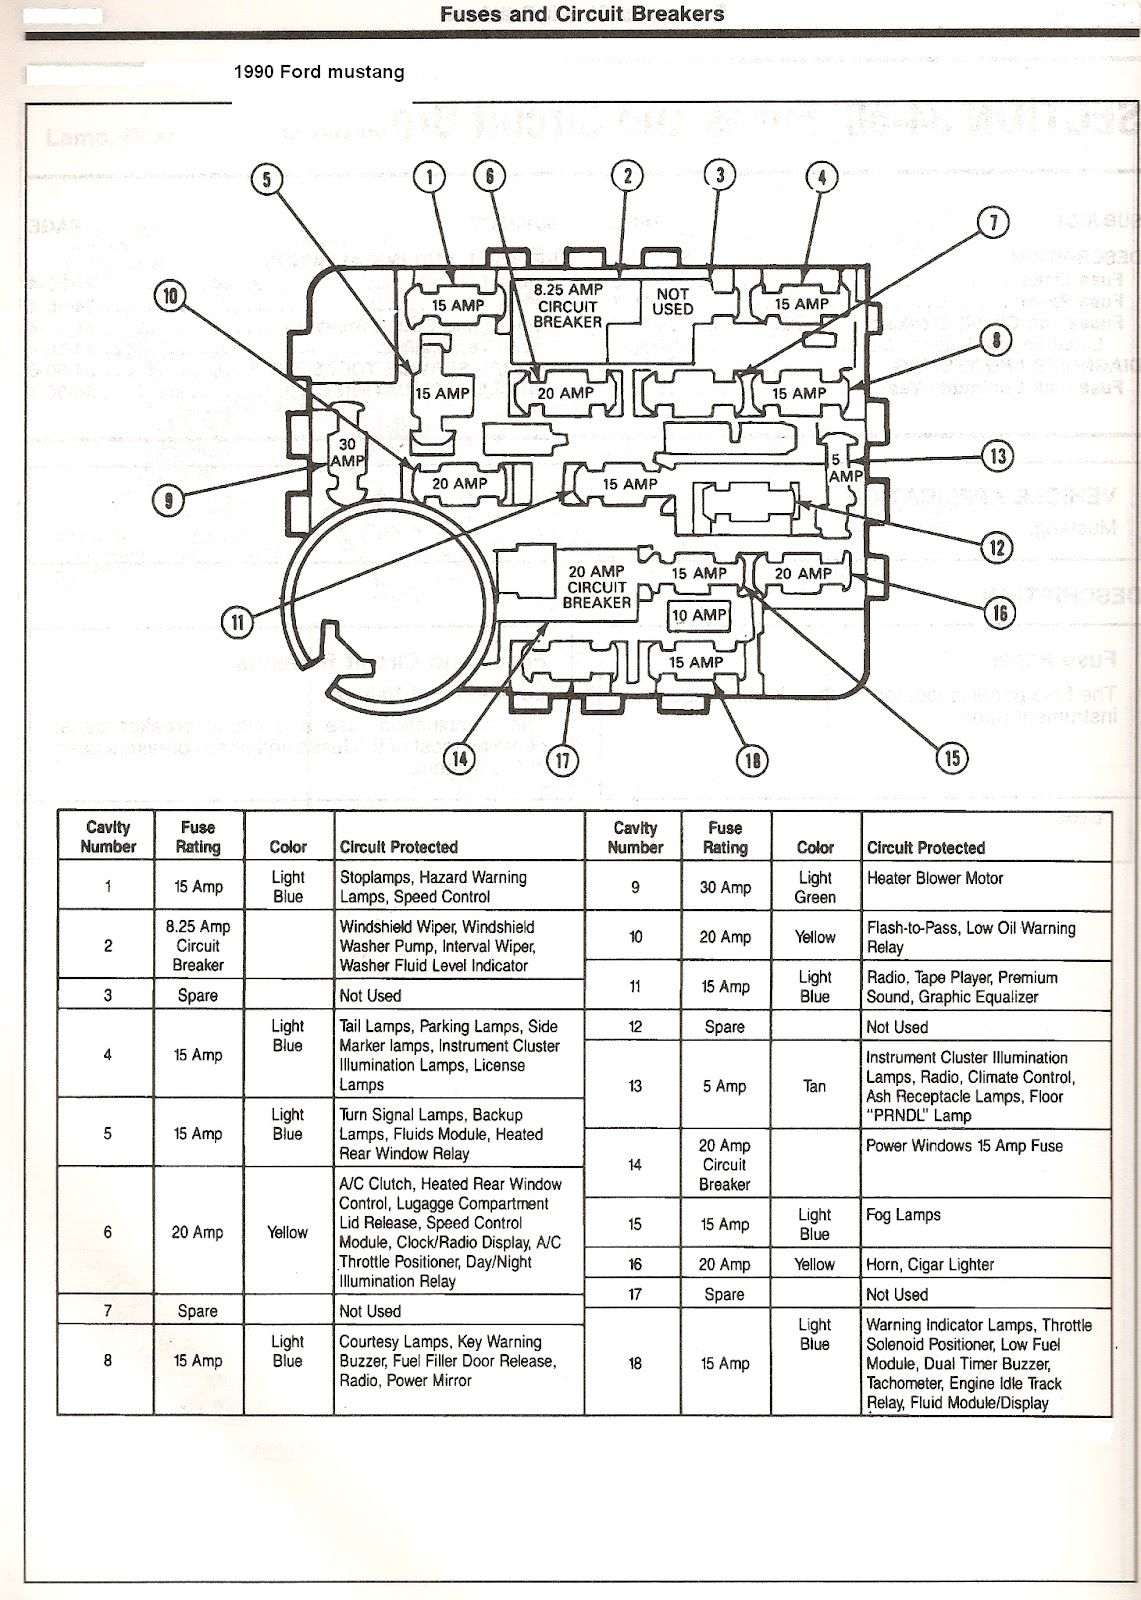 [SCHEMATICS_48ZD]  93 Ford Mustang Fuse Box | Fuse box, Ford ranger, Ford truck | Hot Rod Schymatic Fuse Box |  | Pinterest